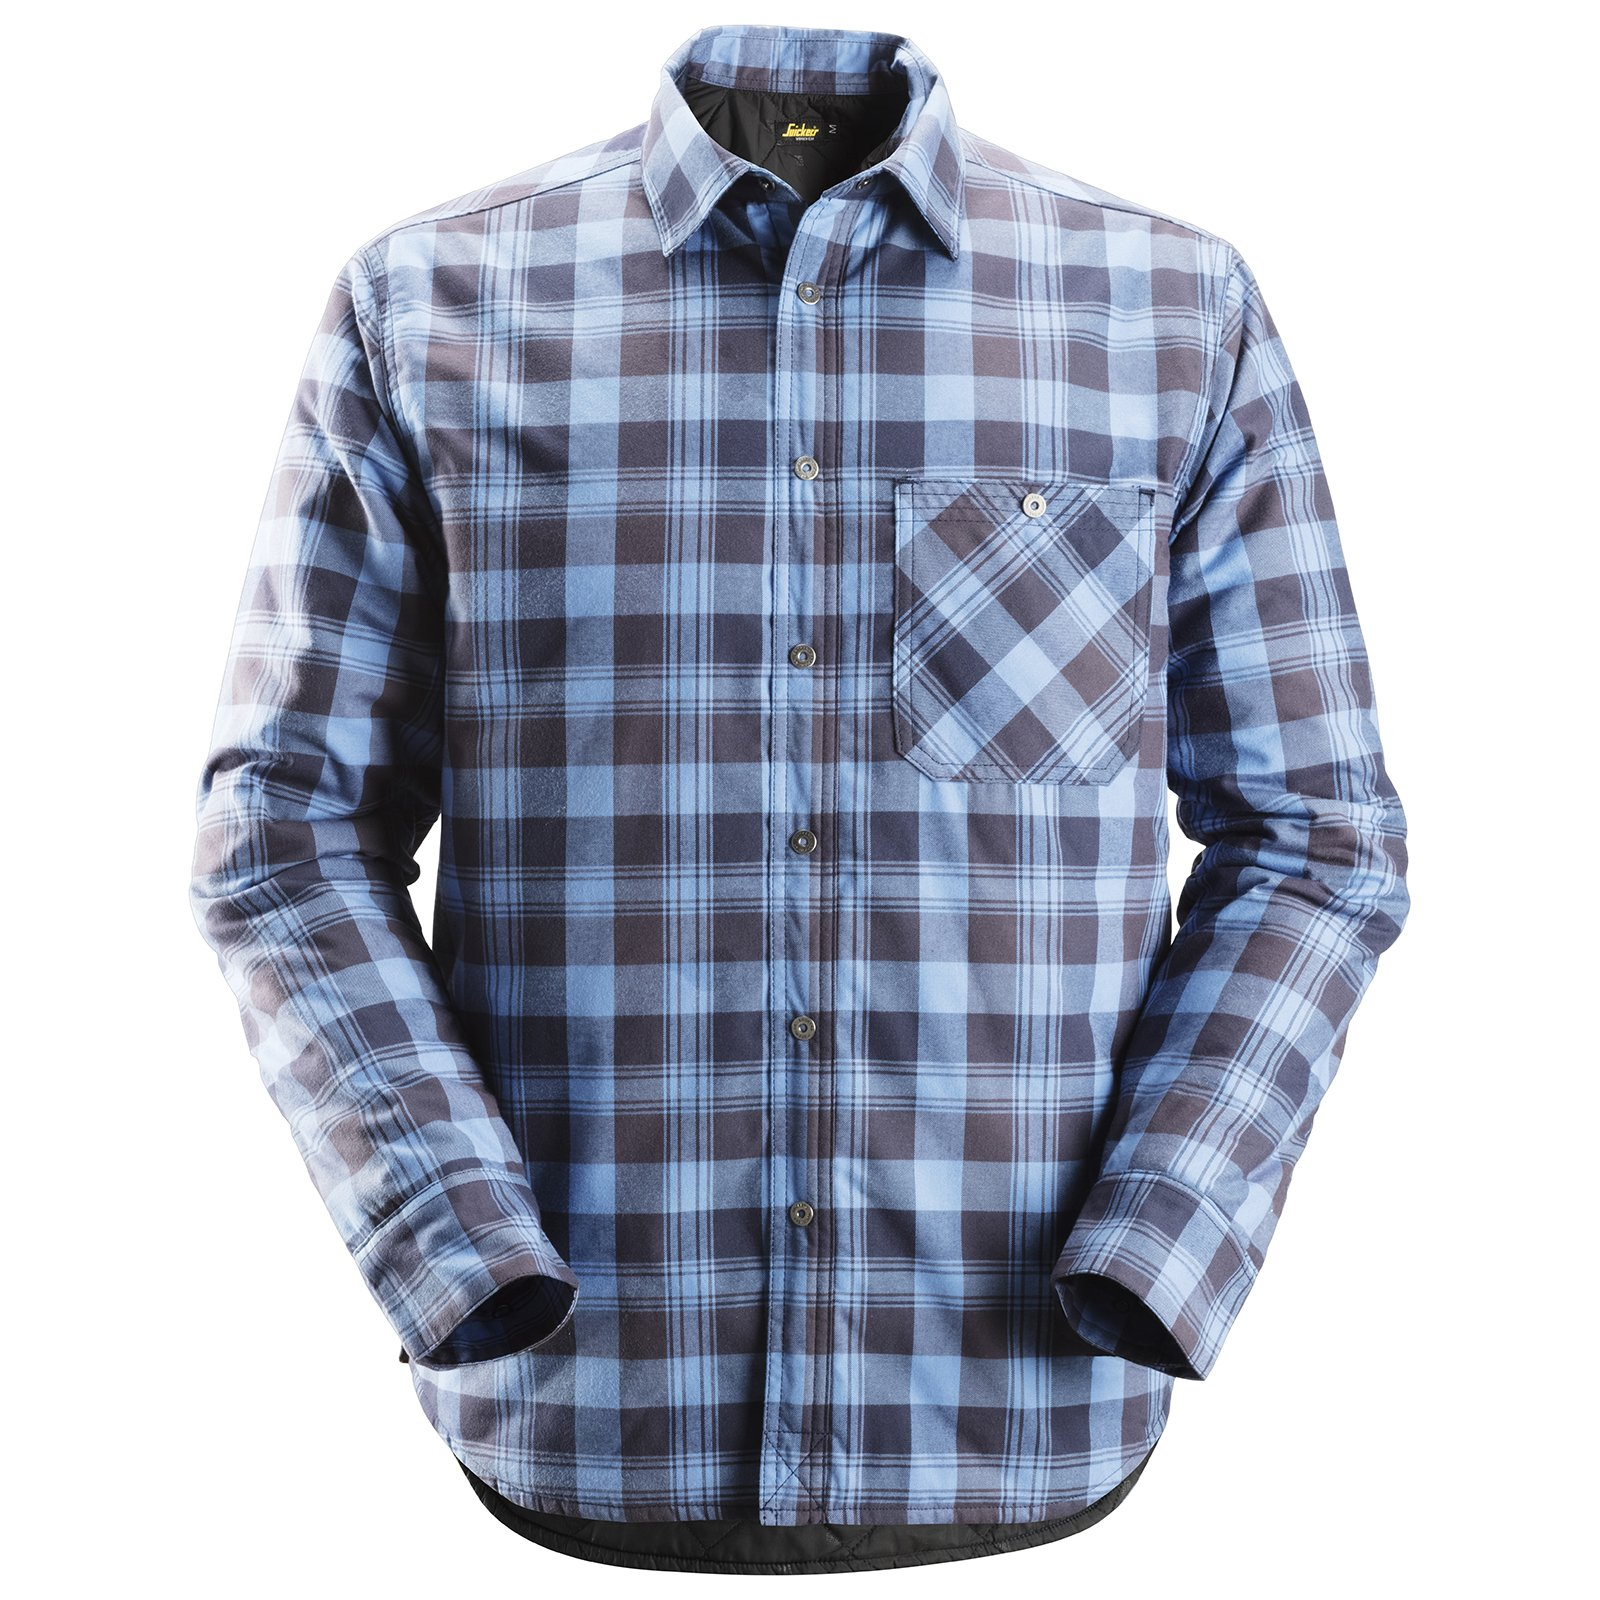 Snickers Workwear 2402 T-Shirt Long Sleeve Mens Shirts Snickers Shirts Pre